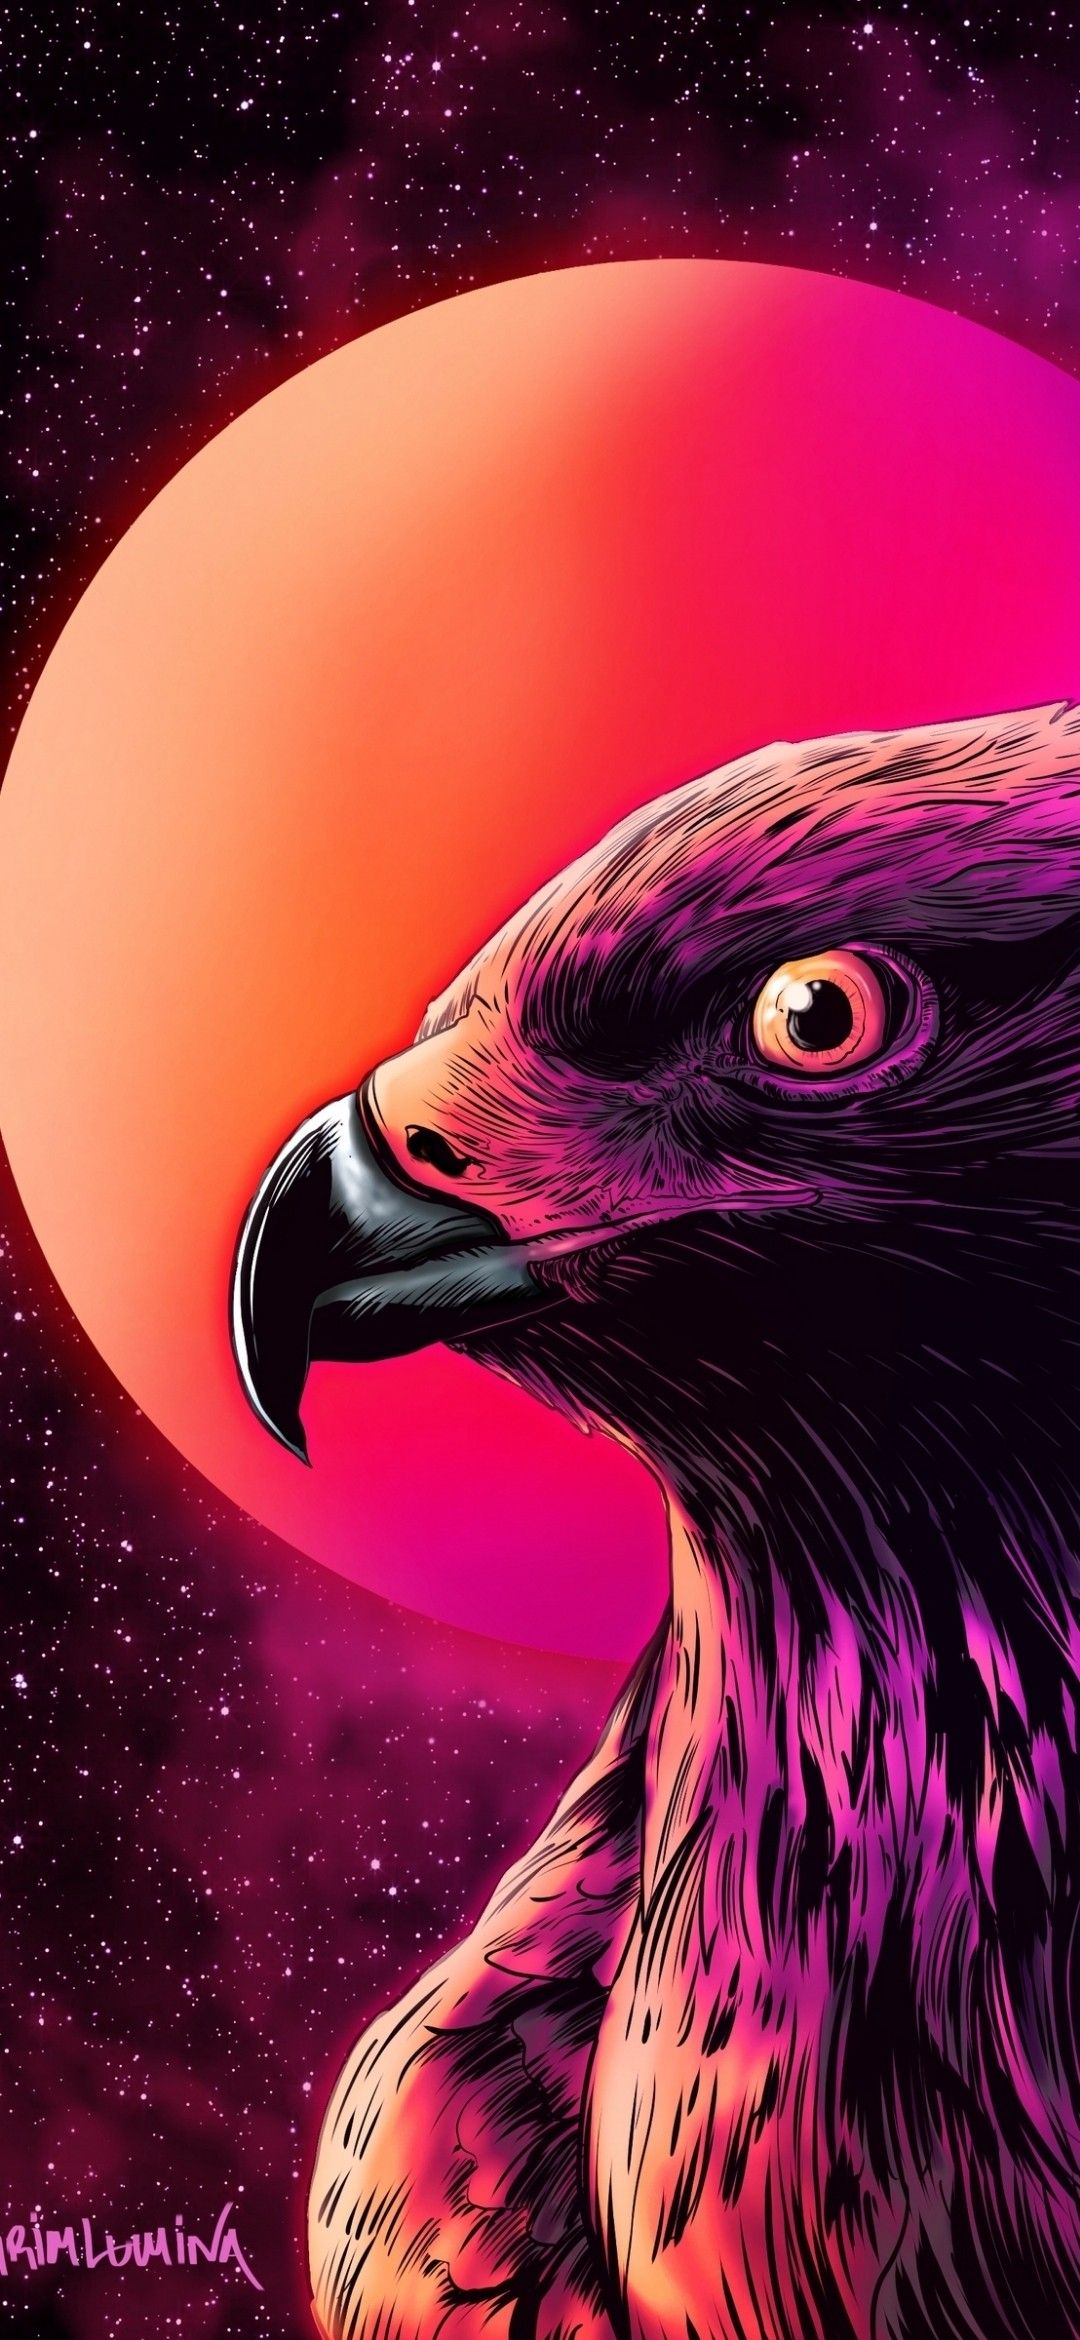 Eagle in sky ultra hd wallpaper for iphone